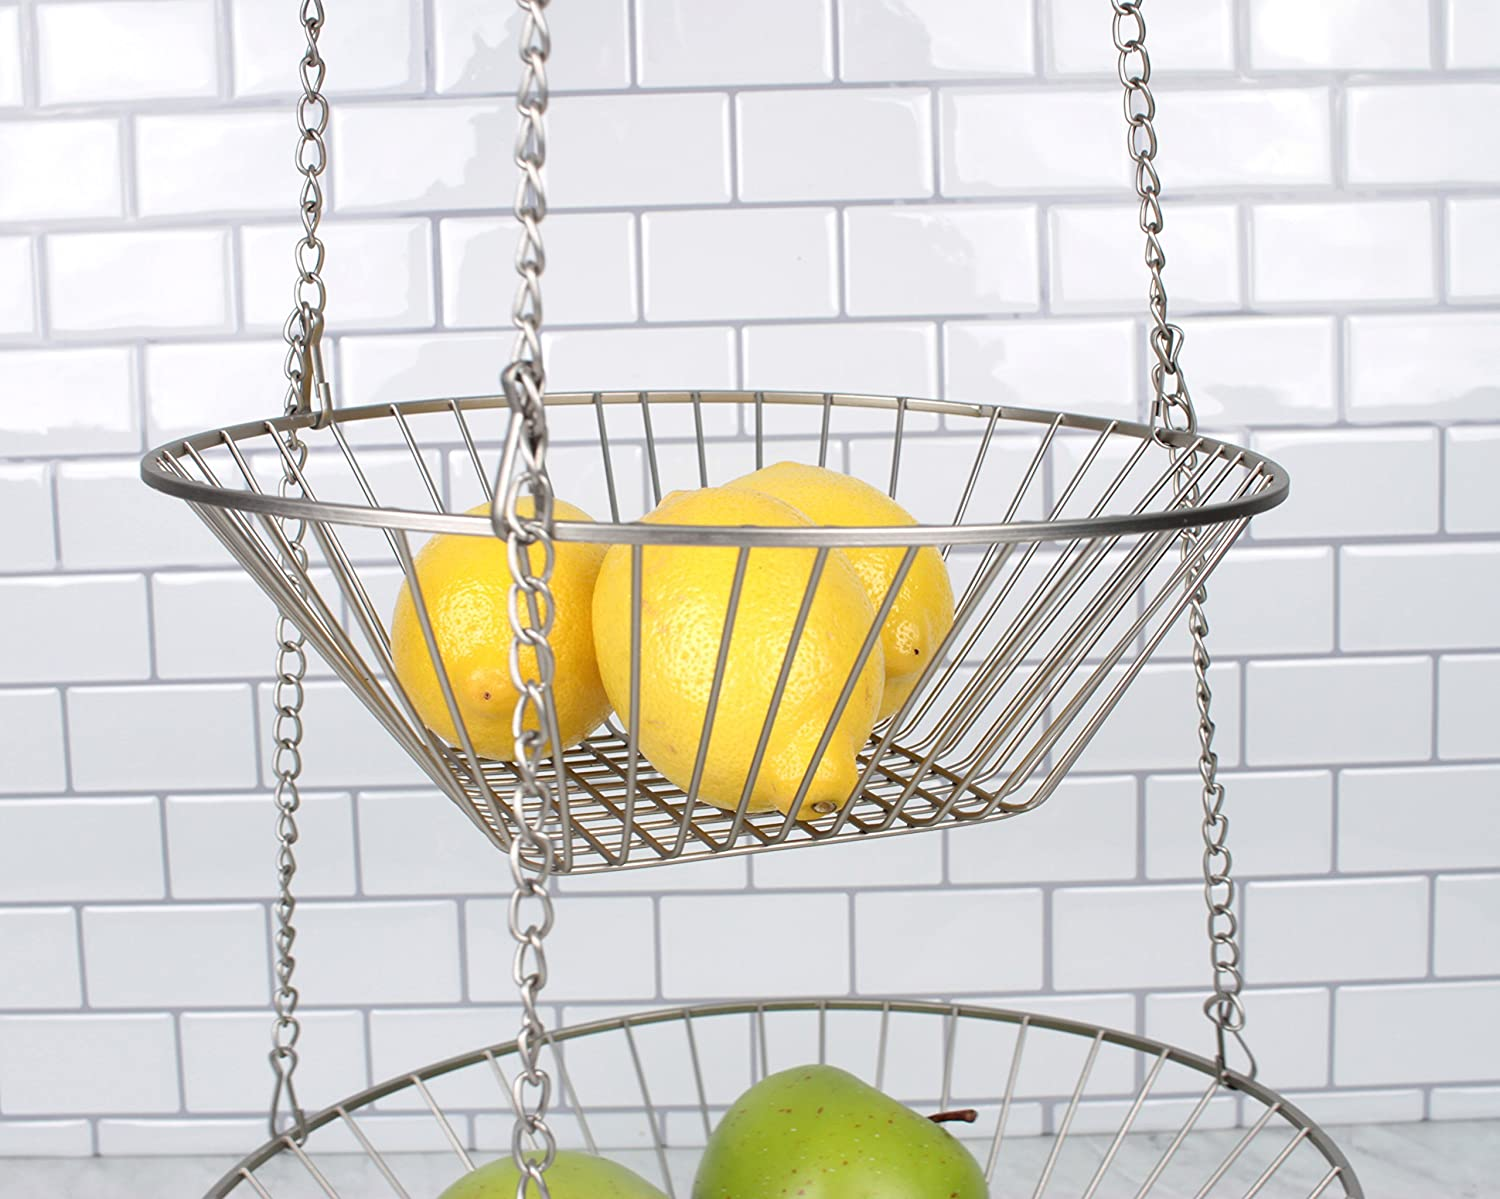 Amazon.com - 3 Tier Satin Nickel Hanging Vegetable Basket - Kitchen ...